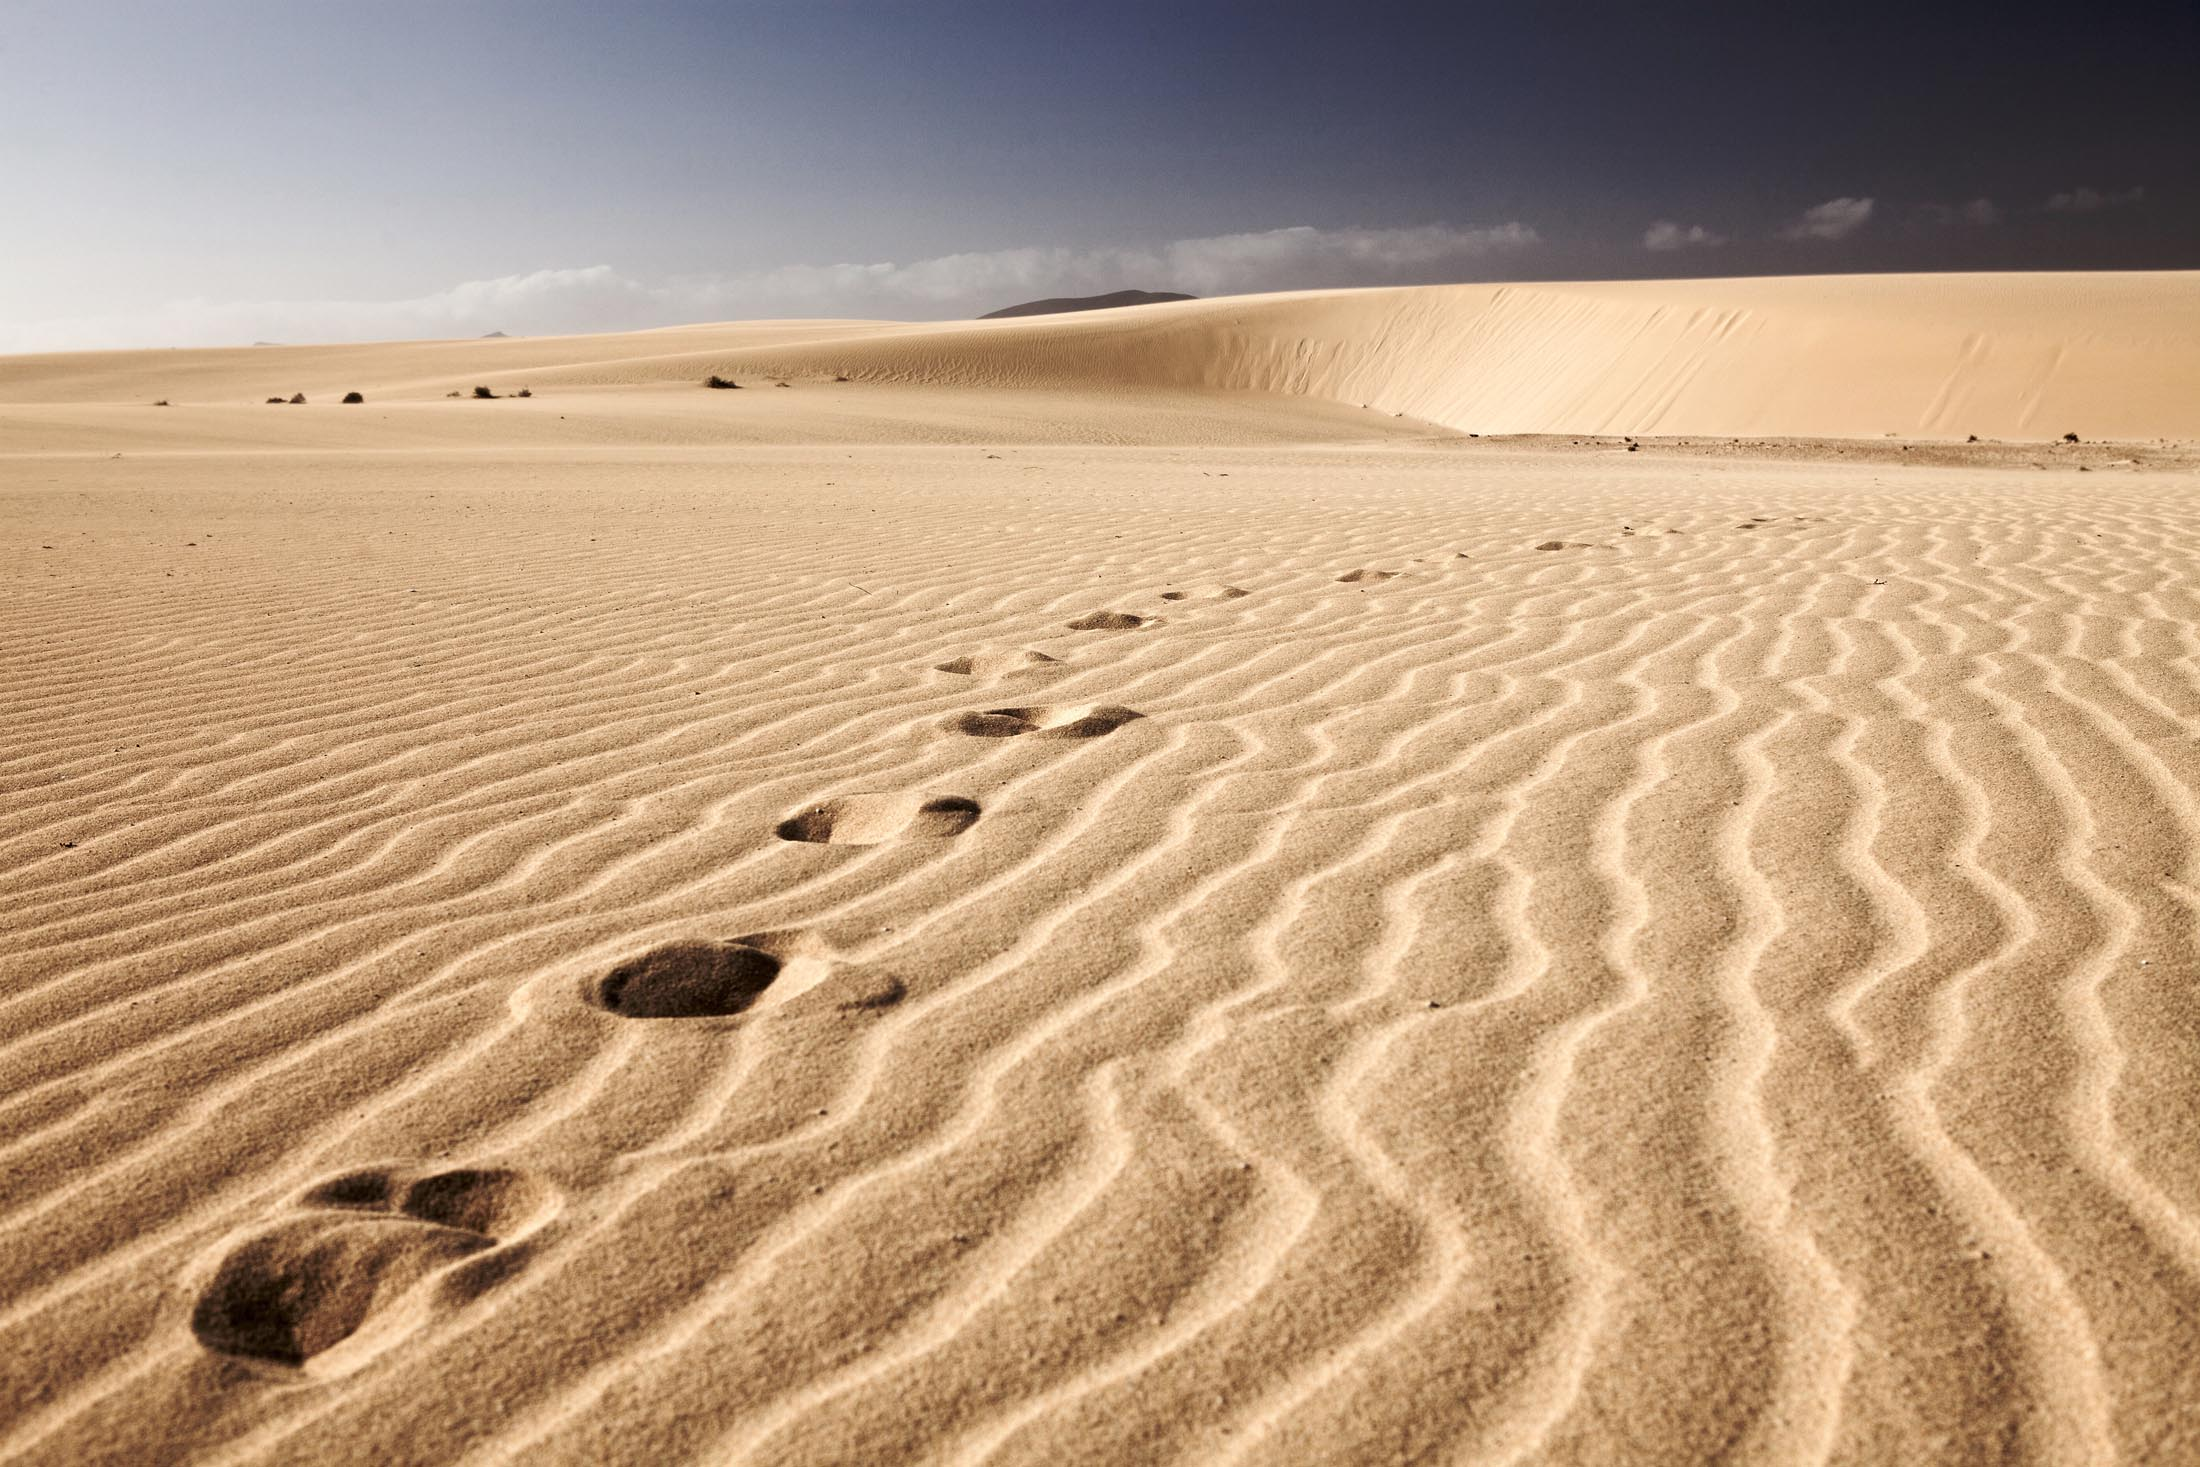 Footsteps in the desert, Fuerteventura